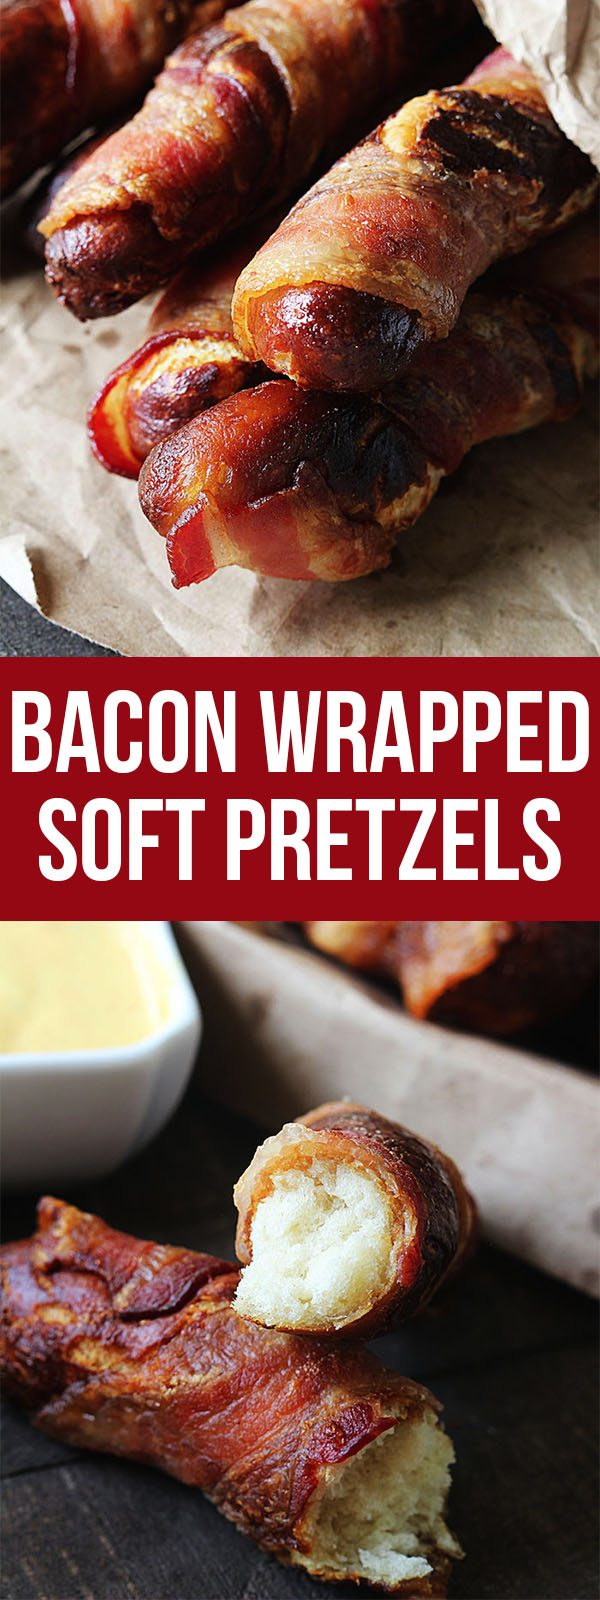 Warm, soft, and salty Bacon Wrapped Soft Pretzels. One of my favorite appetizers! #bacon #bread #pretzel #appetizer #superbowl #recipe